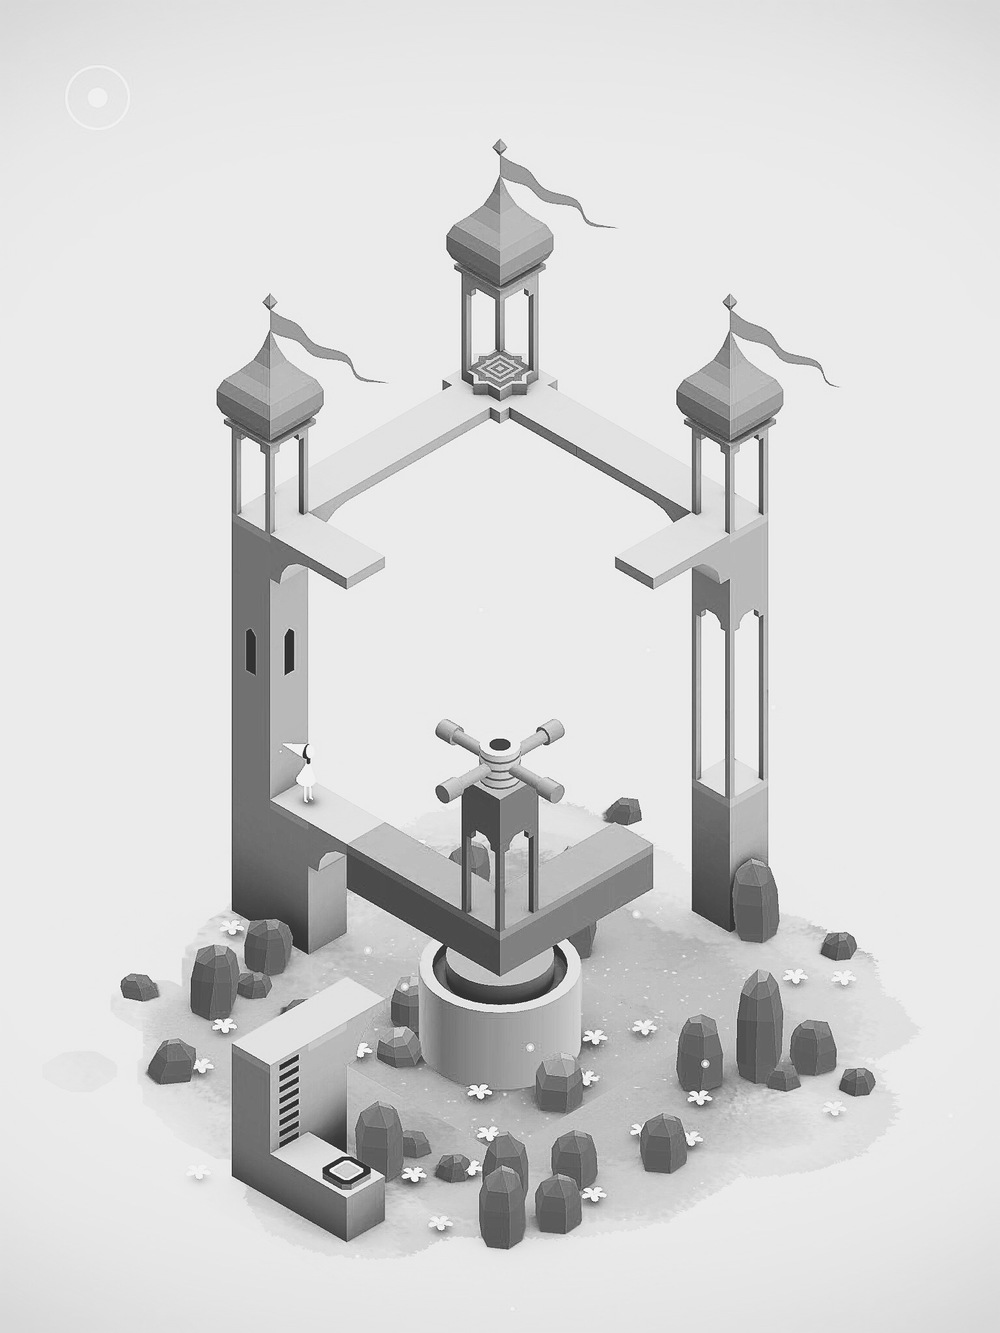 monument valley game review 2